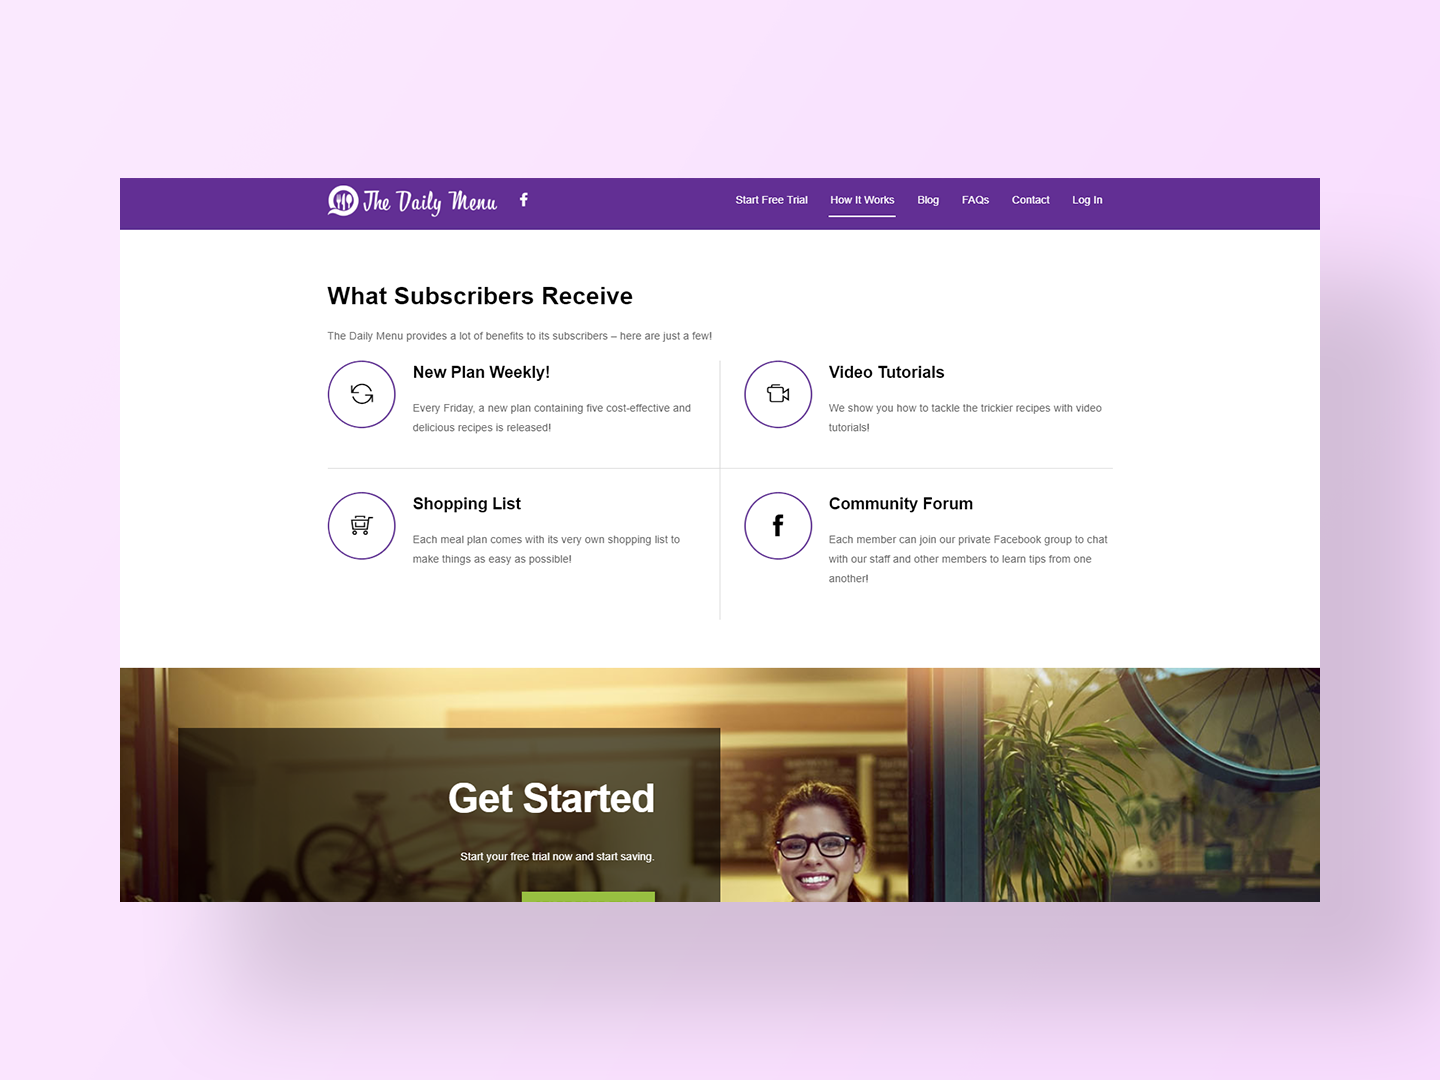 The Daily Menu's new website by Neon Hive